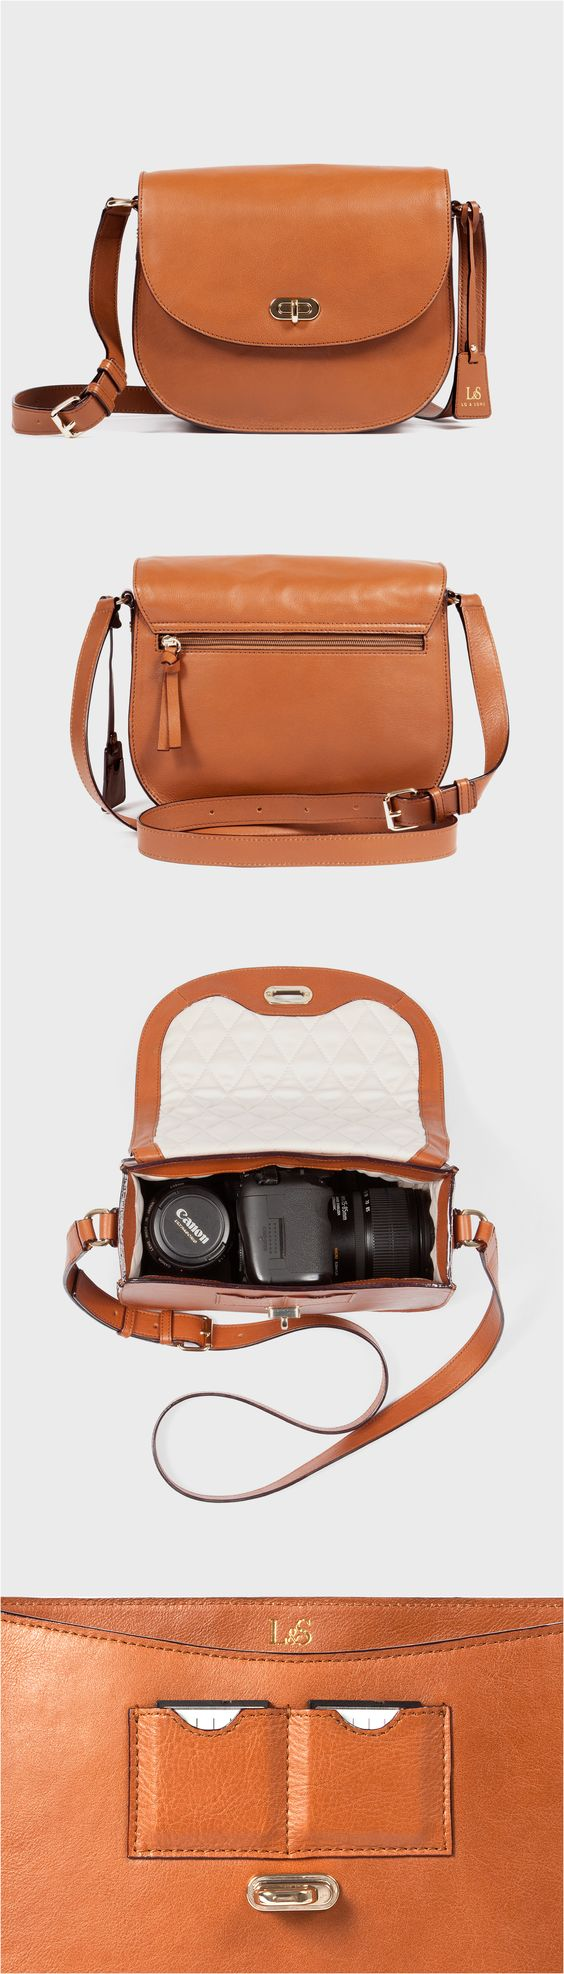 """The Claremont"" womens leather camera crossbody bag. Features a padded and quilted interior compartment for carrying DSLR cameras. Designed by Lo & Sons  #loandsons"